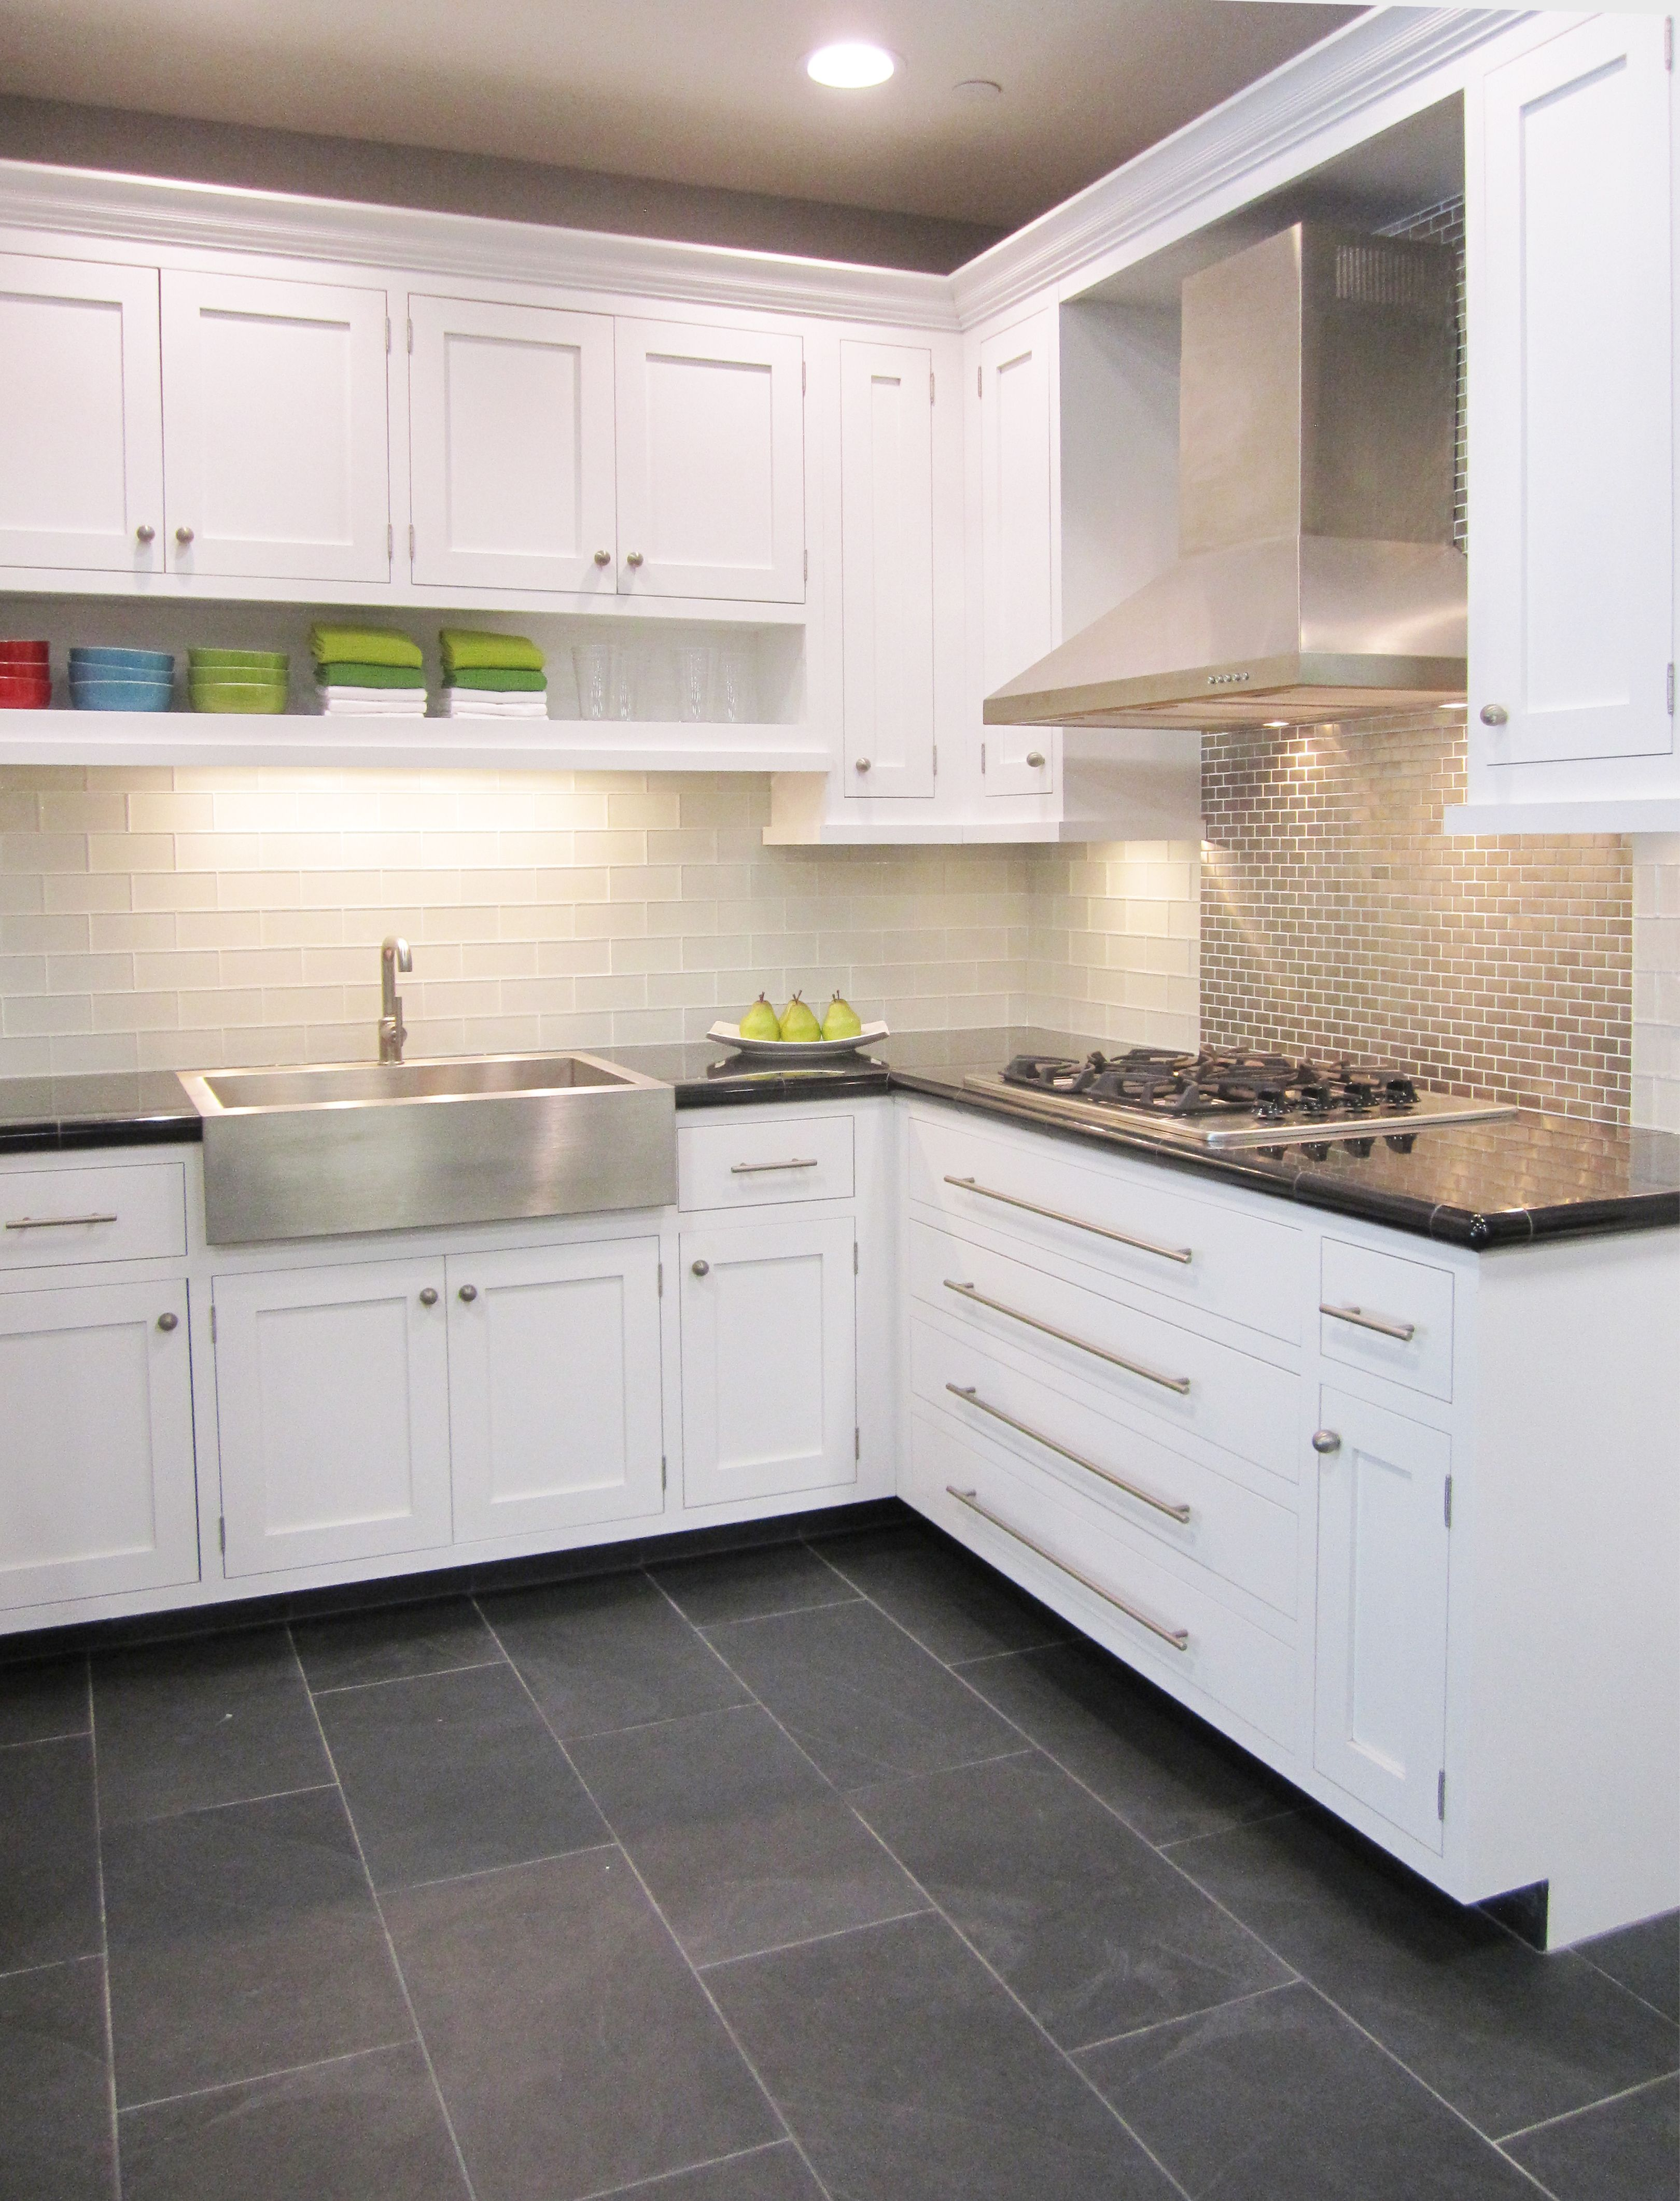 Gray Tile Kitchen Floor 12 X 24 Montauk Black Slate Tiles Floors Pinterest Slate